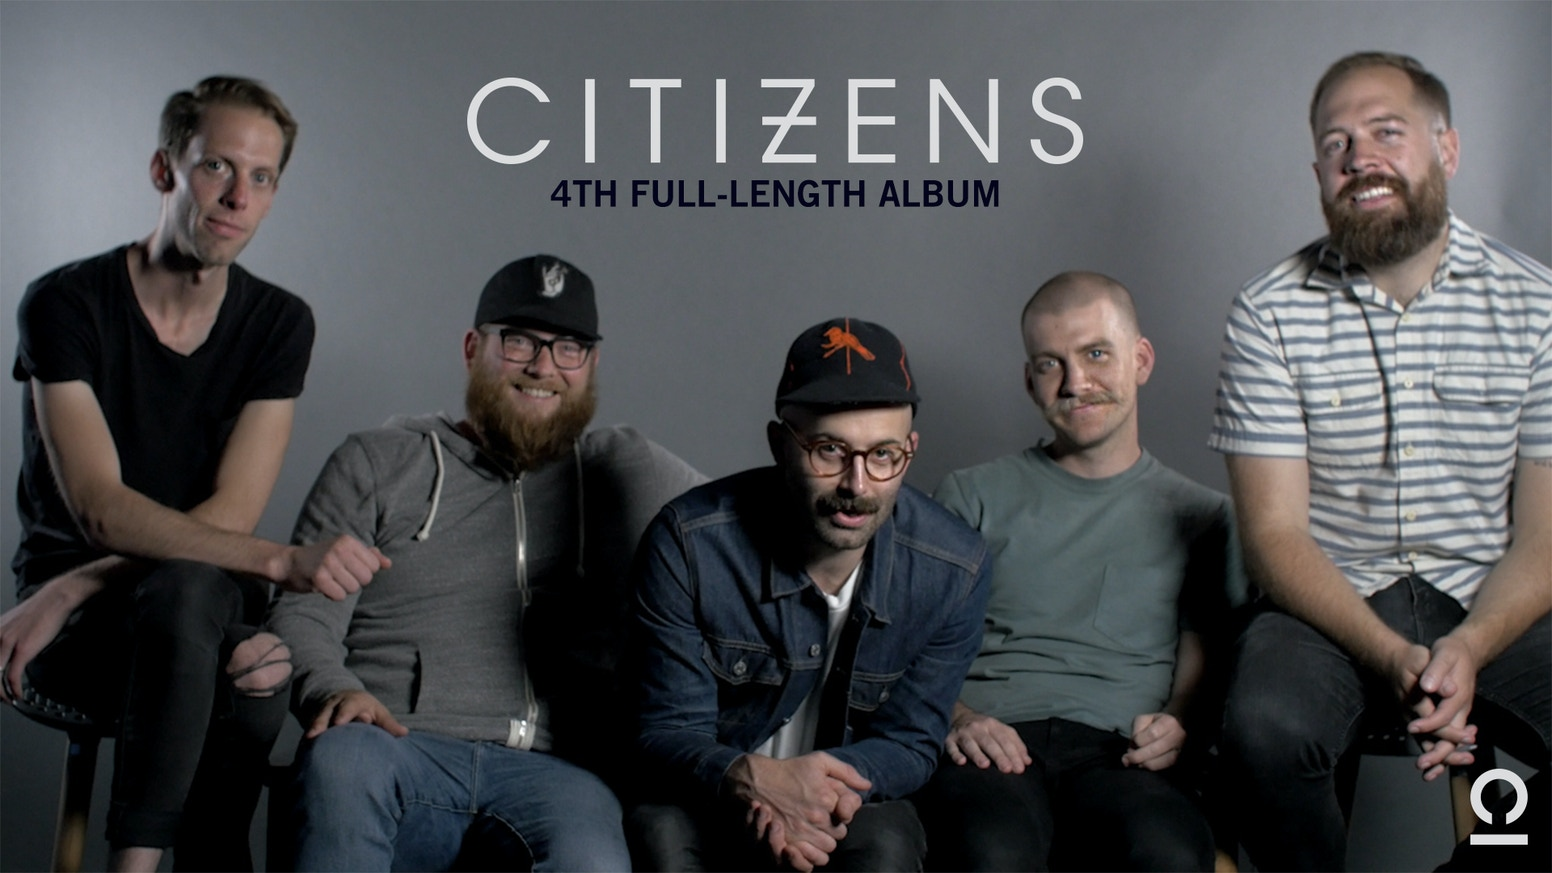 Citizens 4th Full-Length Album Project by CITIZENS » 22 ...